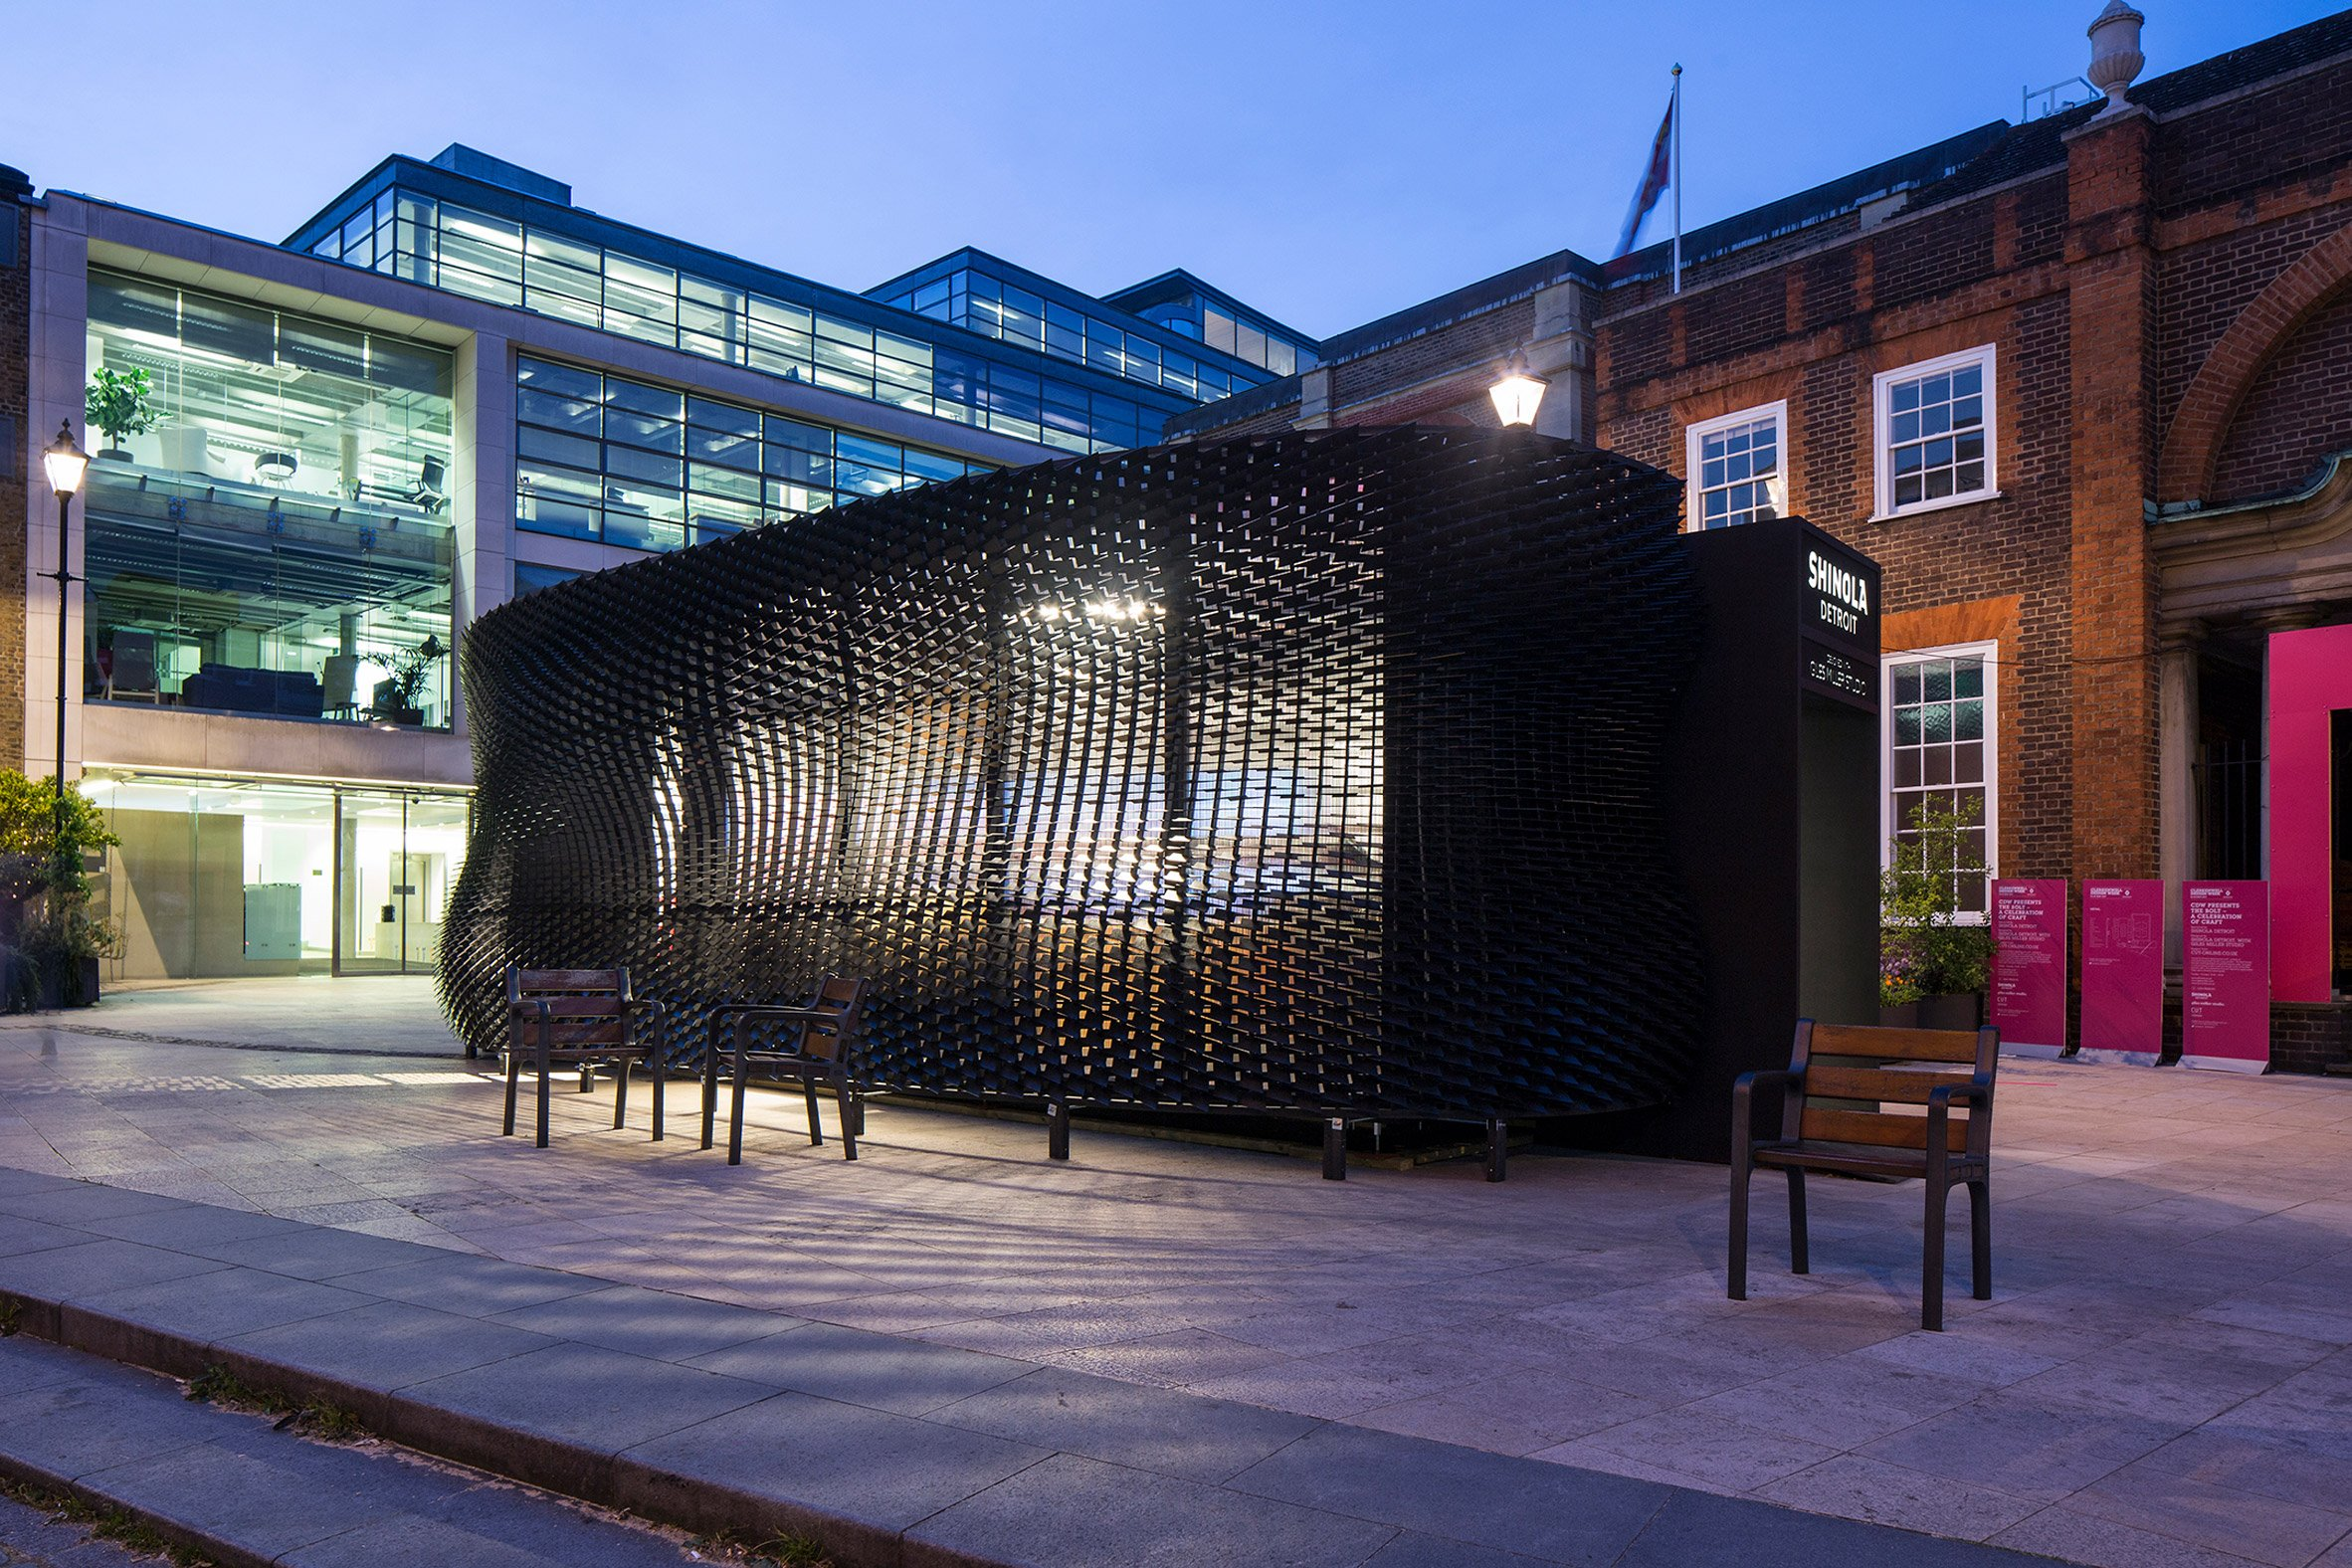 Giles Miller installs louvred plywood pavilion in London's Clerkenwell